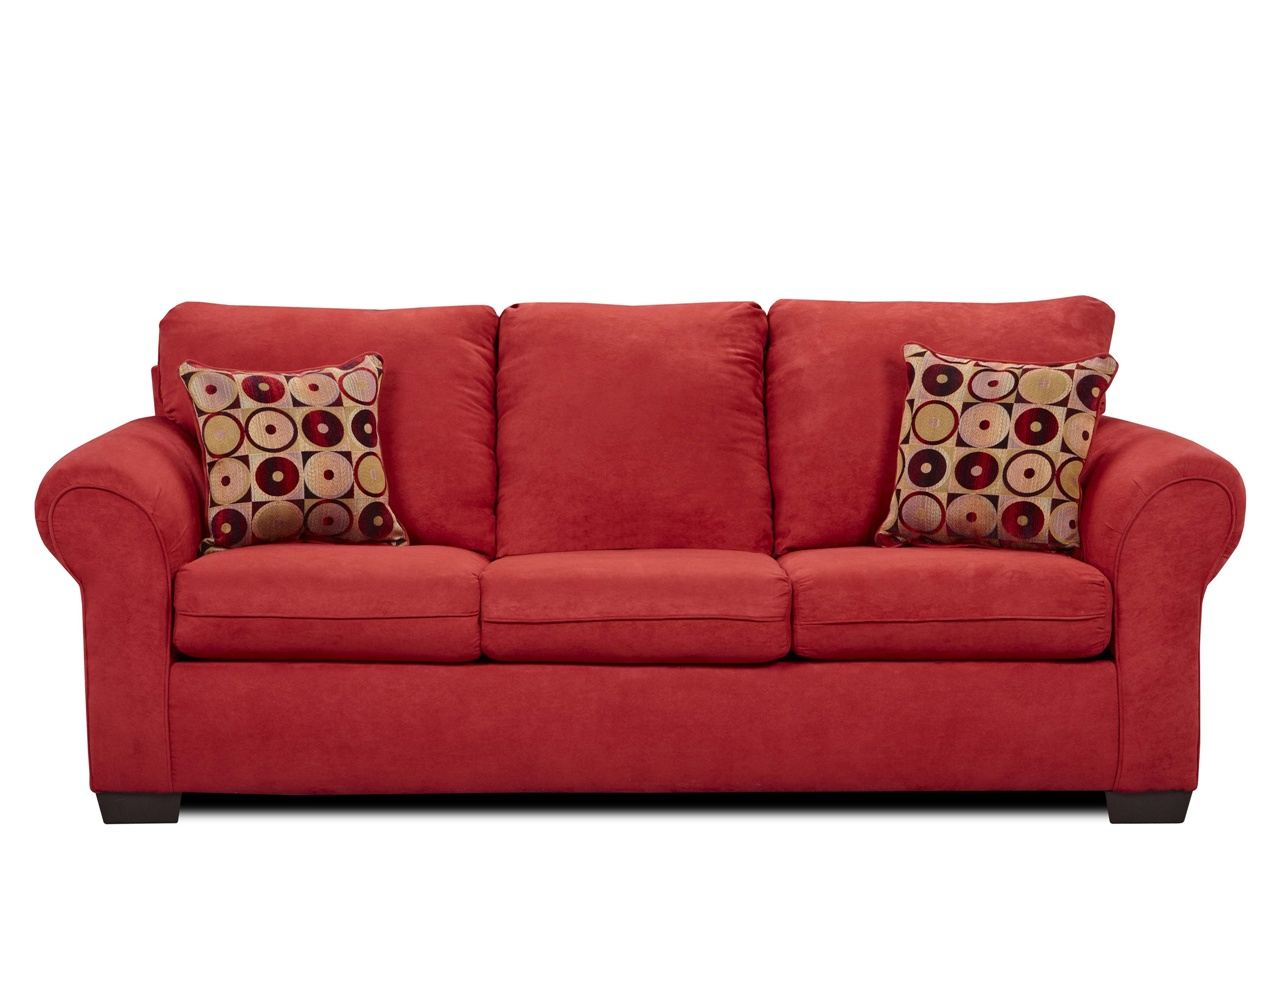 Cute cheapest couches available online couch sofa for Couch furniture